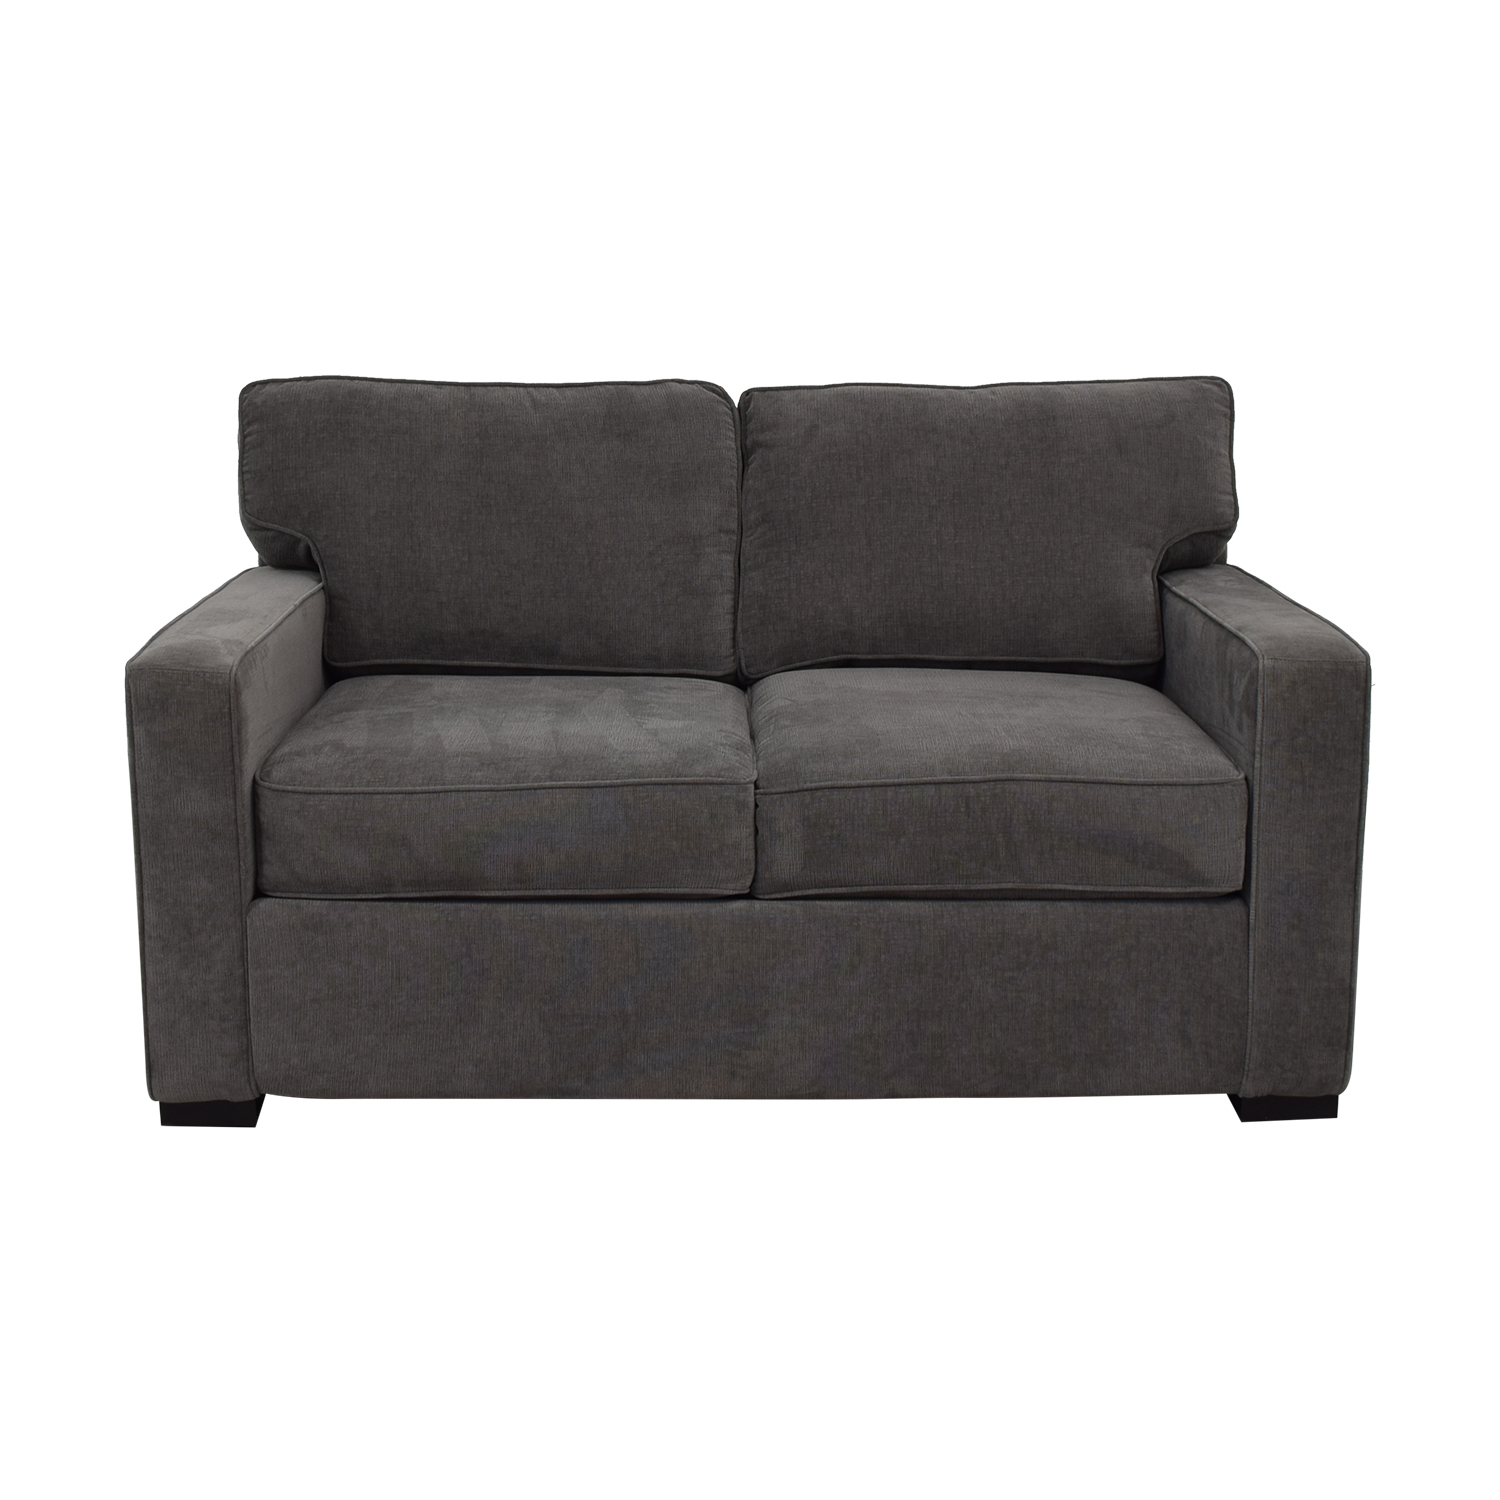 Macy's Macy's Grey Radley Loveseat coupon